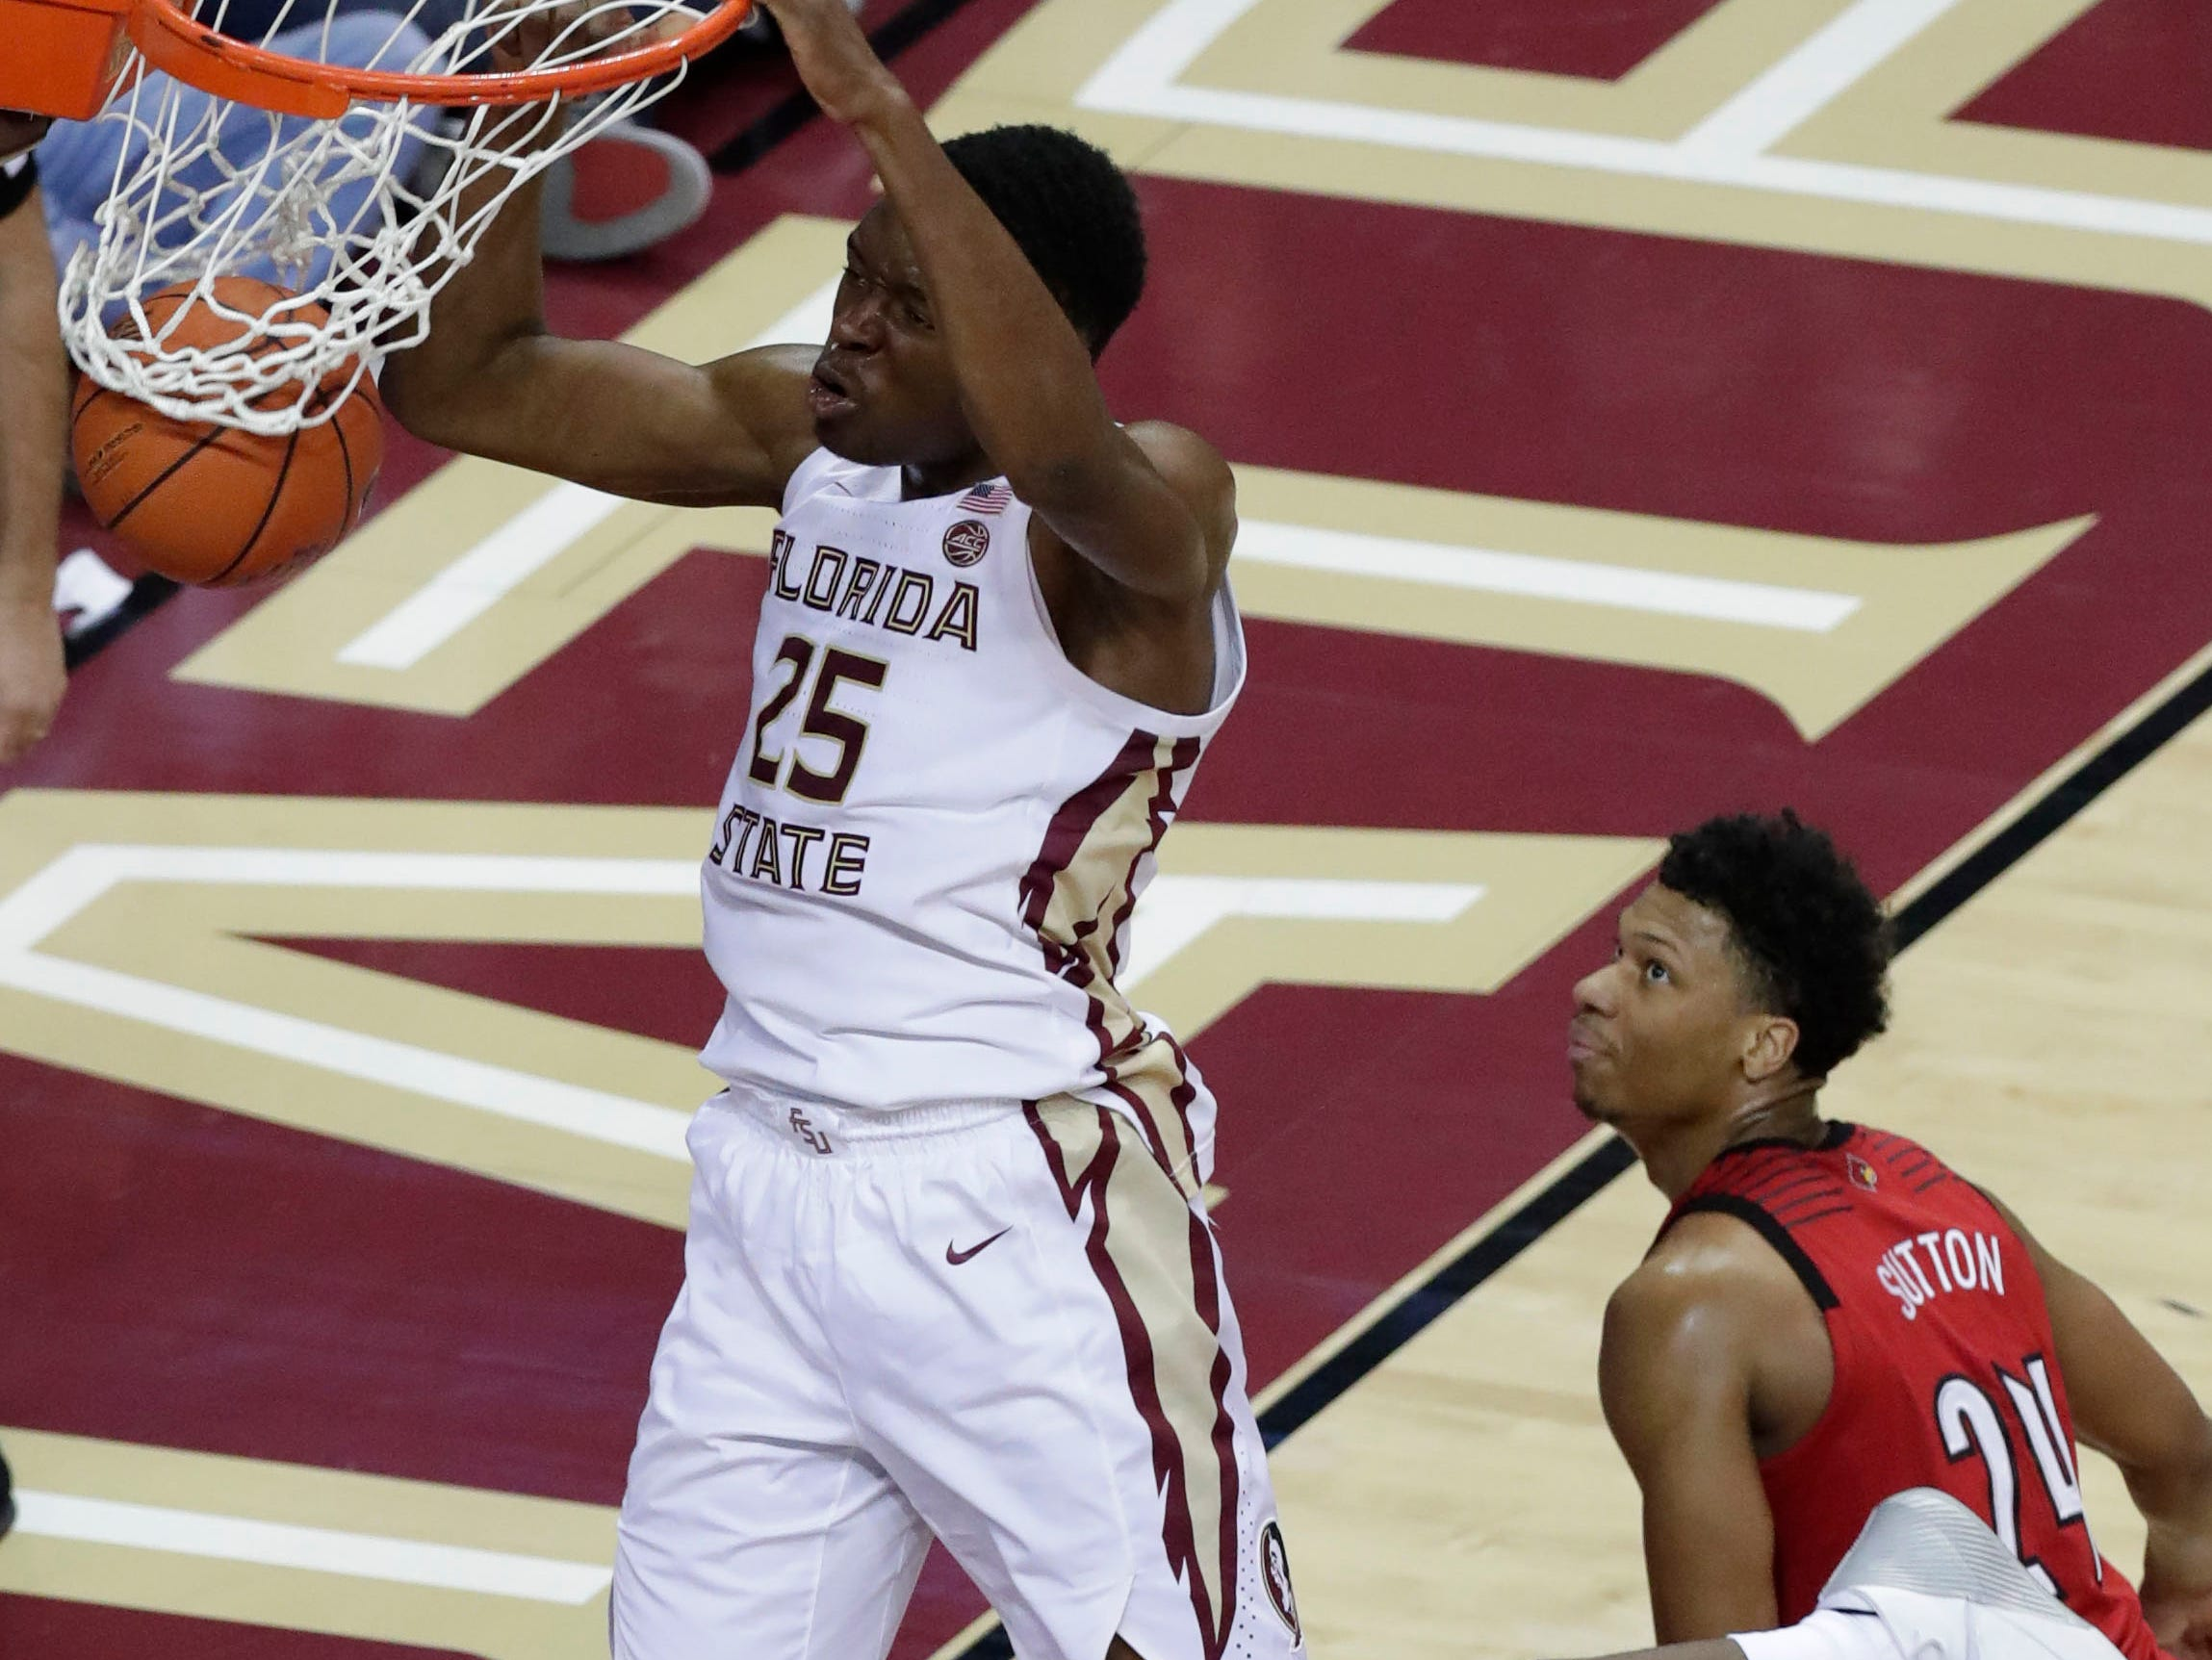 Florida State Seminoles forward Mfiondu Kabengele (25) slam dunks as the Florida State Seminoles host the Louisville Cardinals at the Tucker Civic Center, Saturday Feb. 9, 2019.